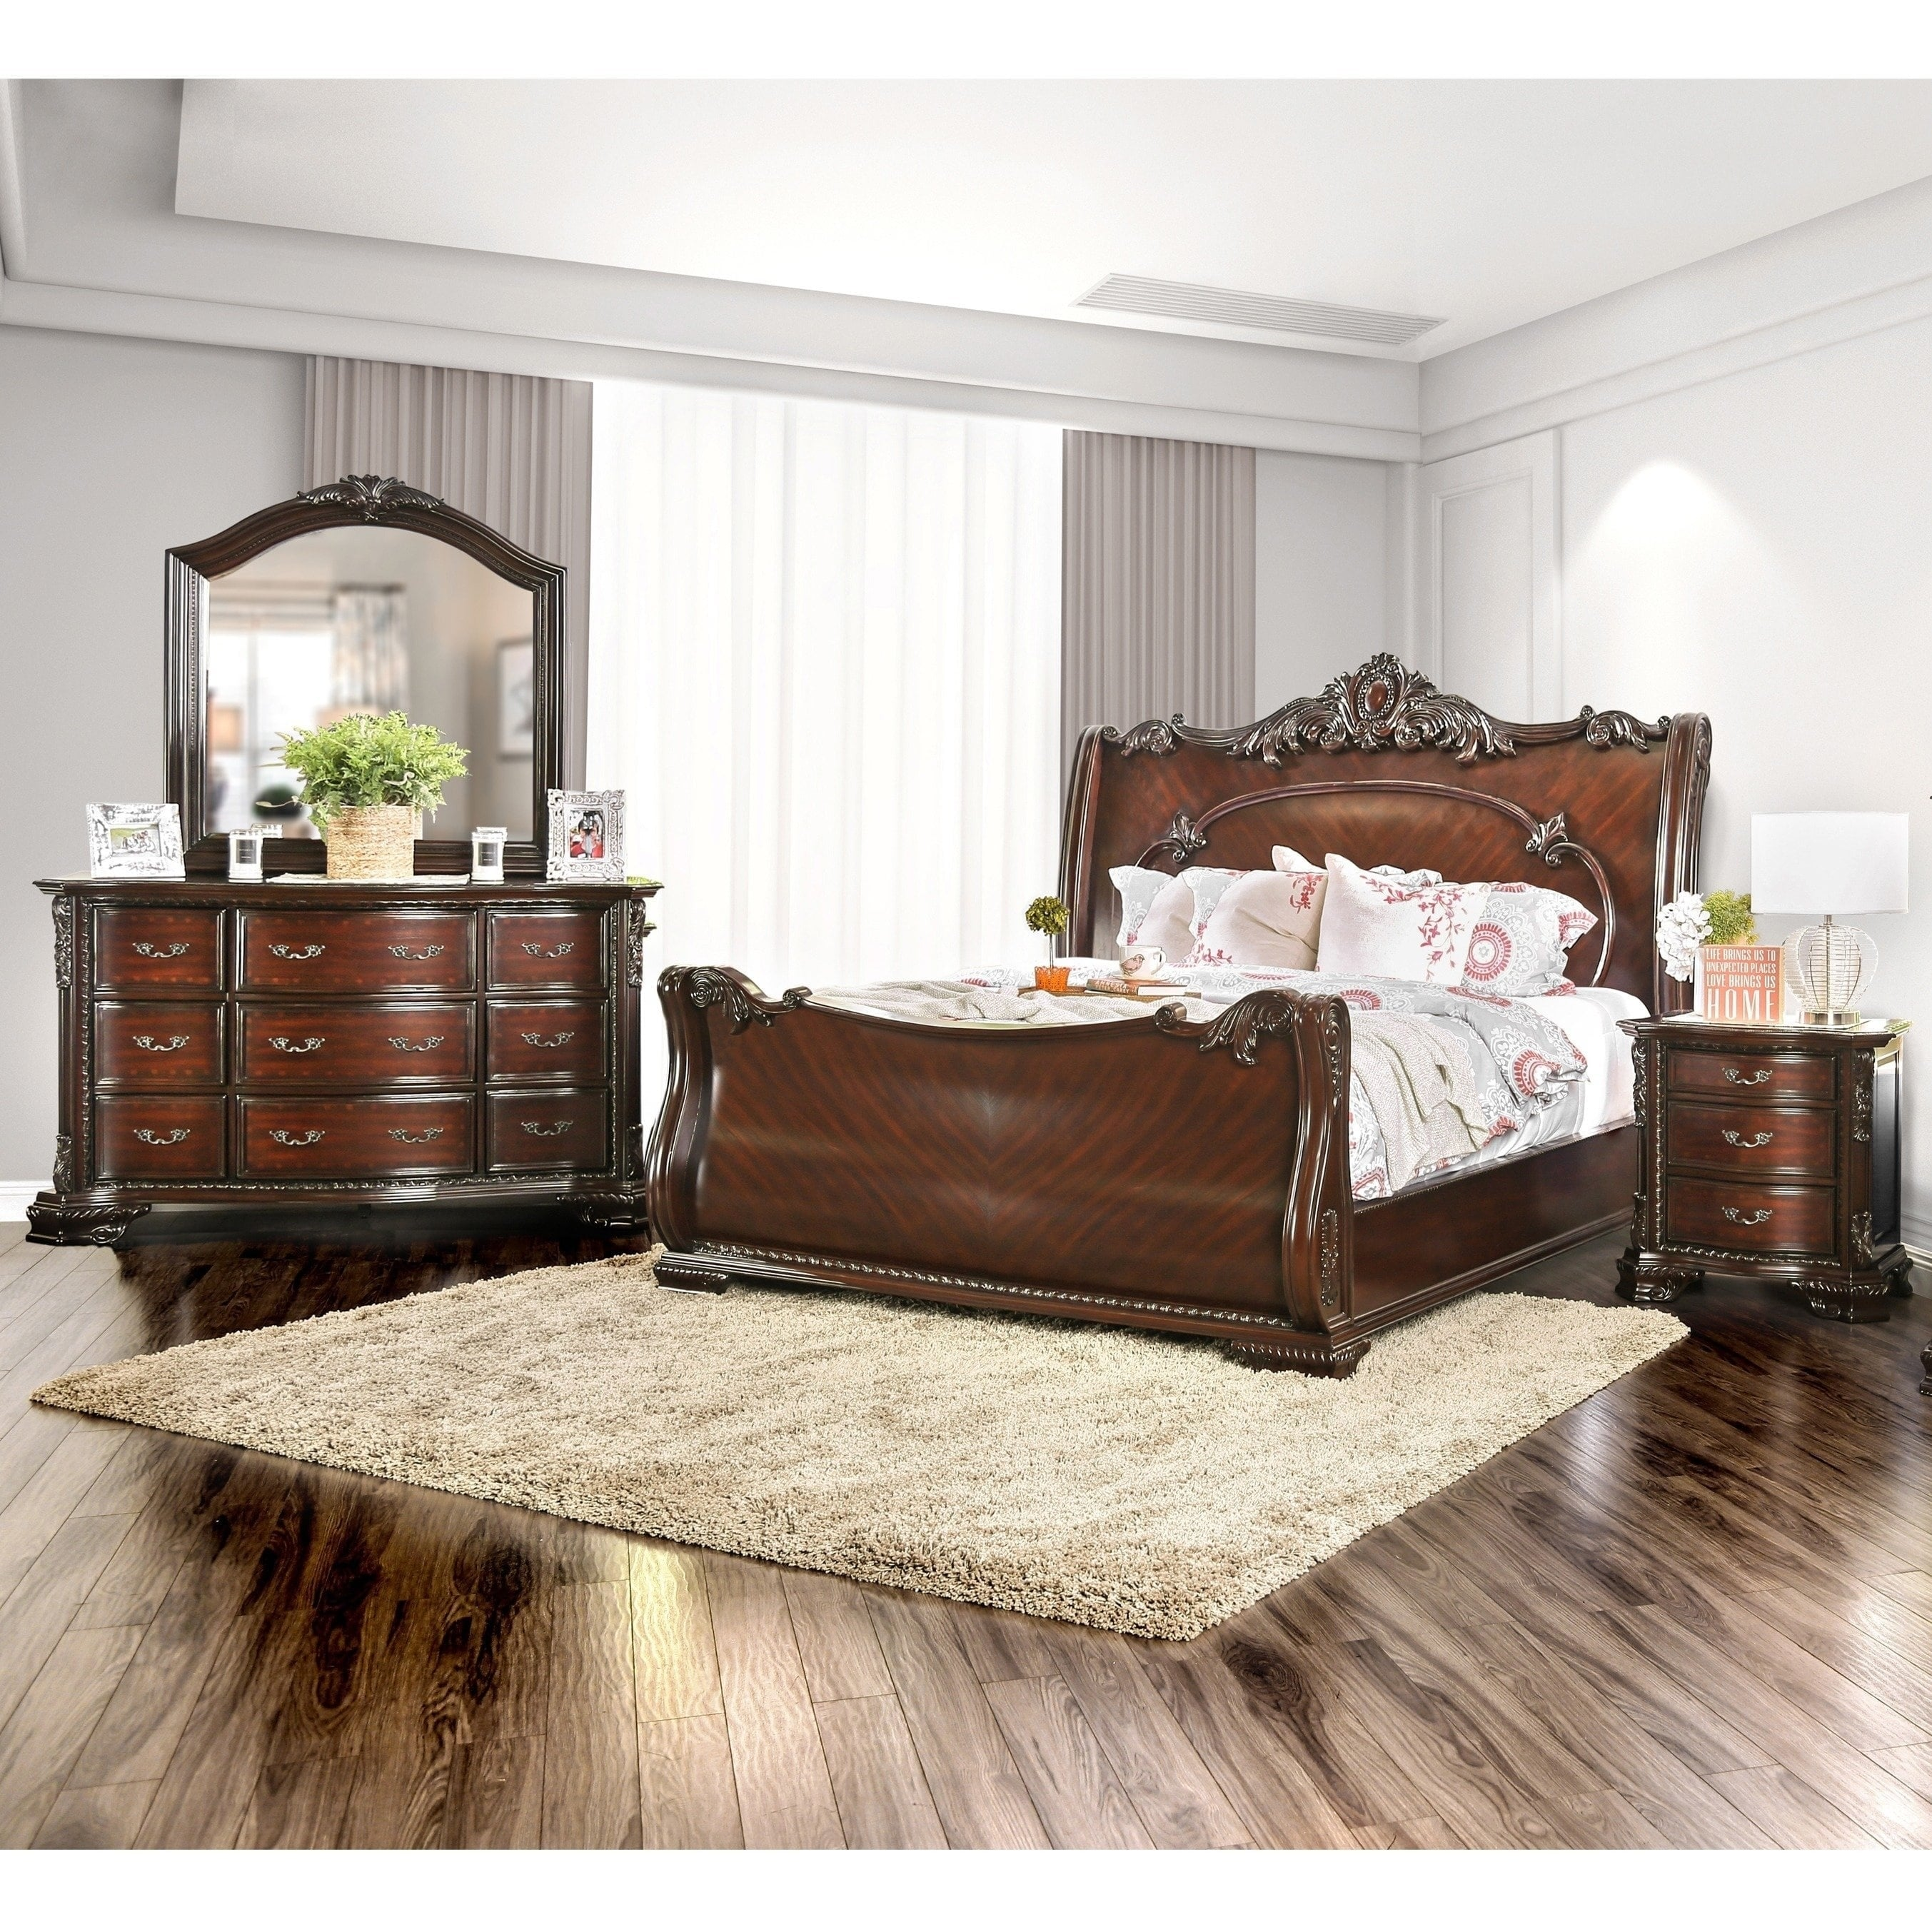 Excellent Luxury Traditional Brown Cherry 4 Piece Bedroom Set By Foa Home Interior And Landscaping Spoatsignezvosmurscom